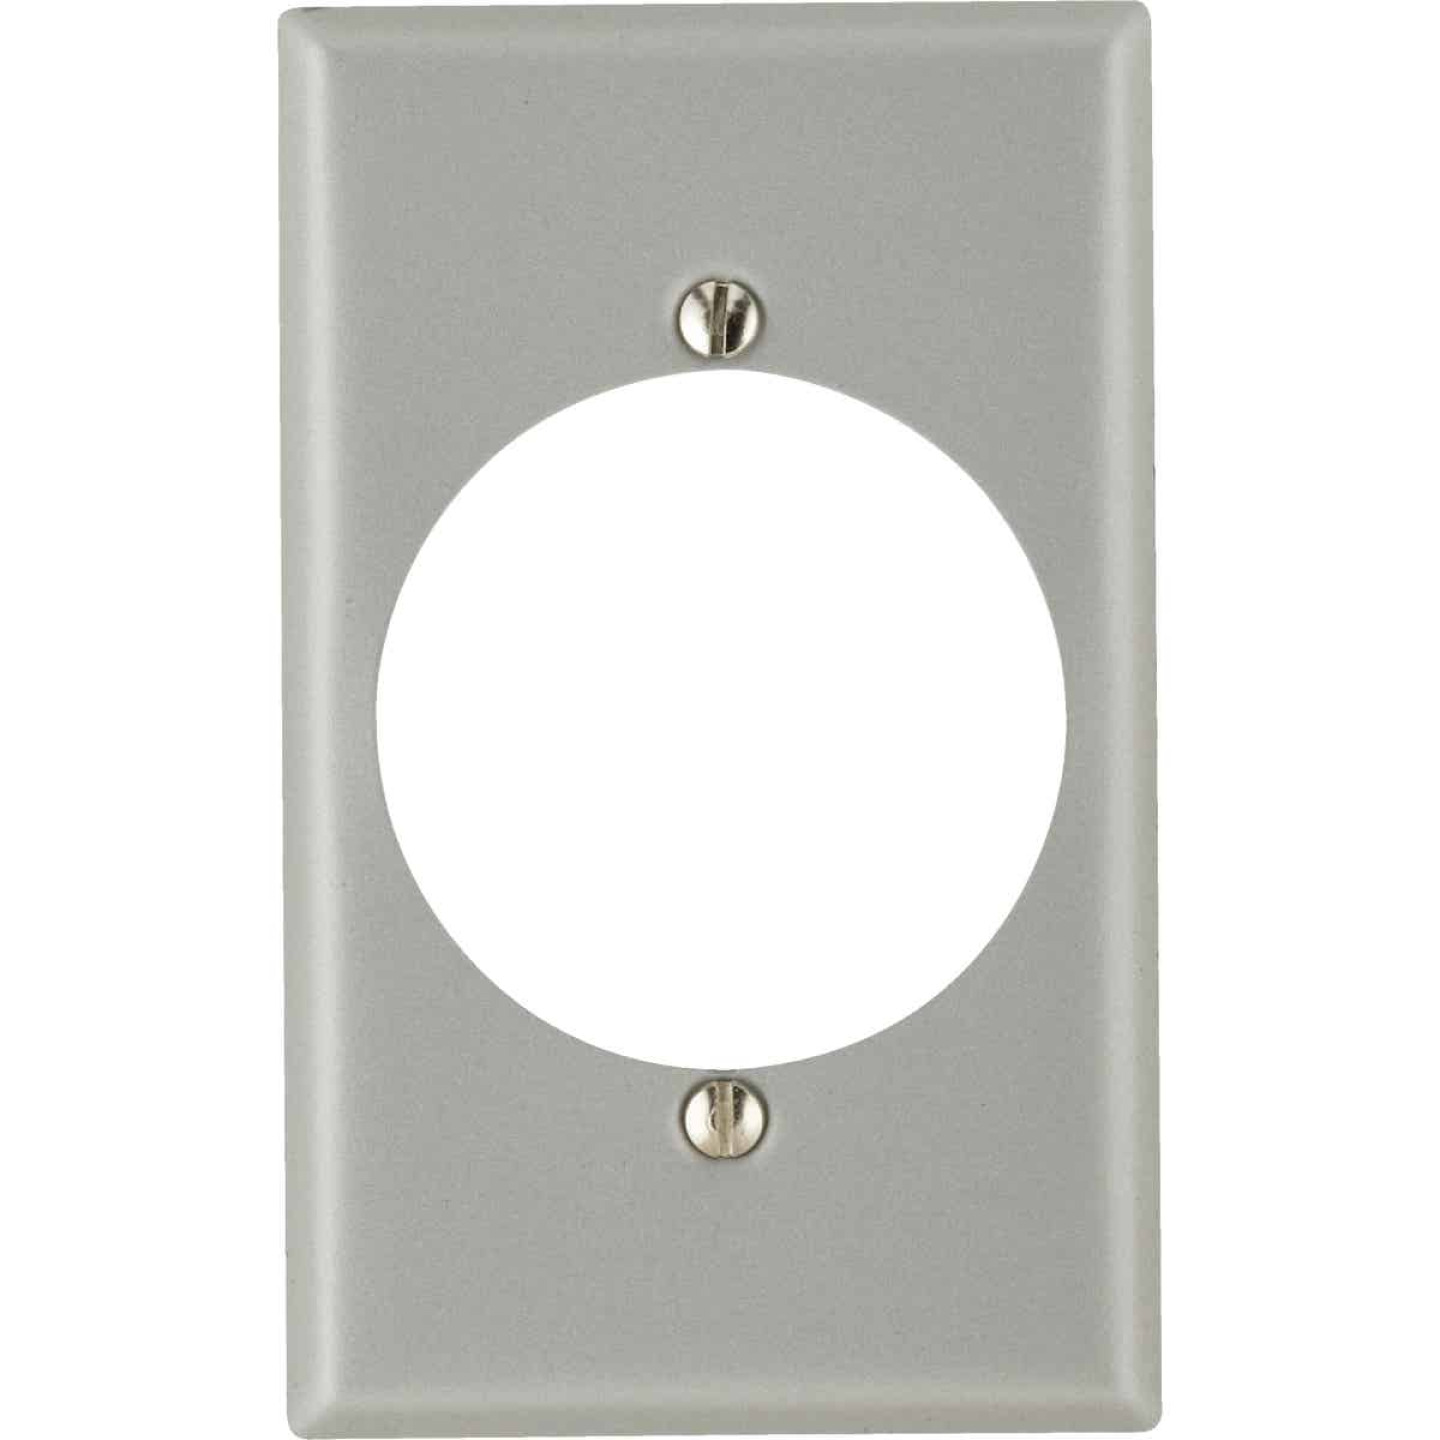 Leviton 1-Gang Steel Range/Dryer Wall Plate Image 1